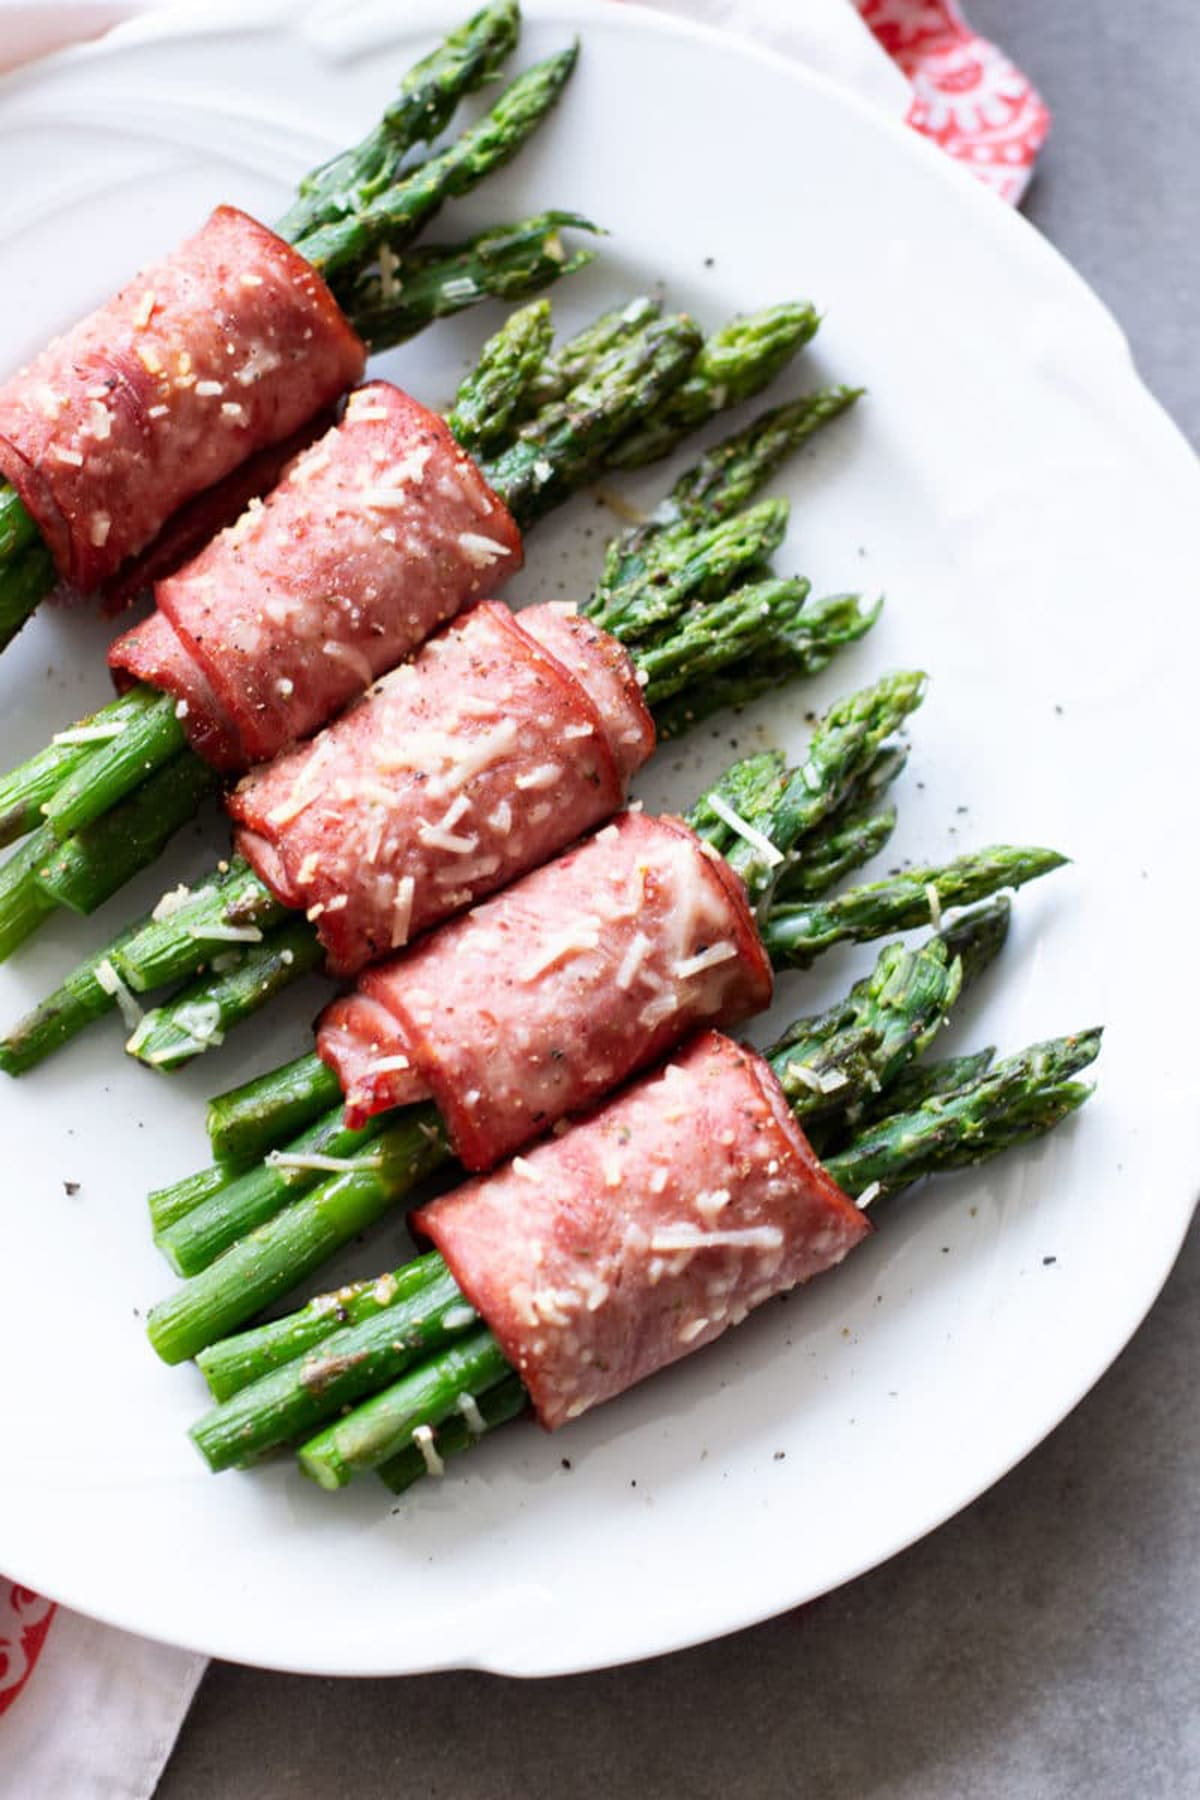 White plate containing five asparagus wrapped in bacon and topped with Parmesan cheese.